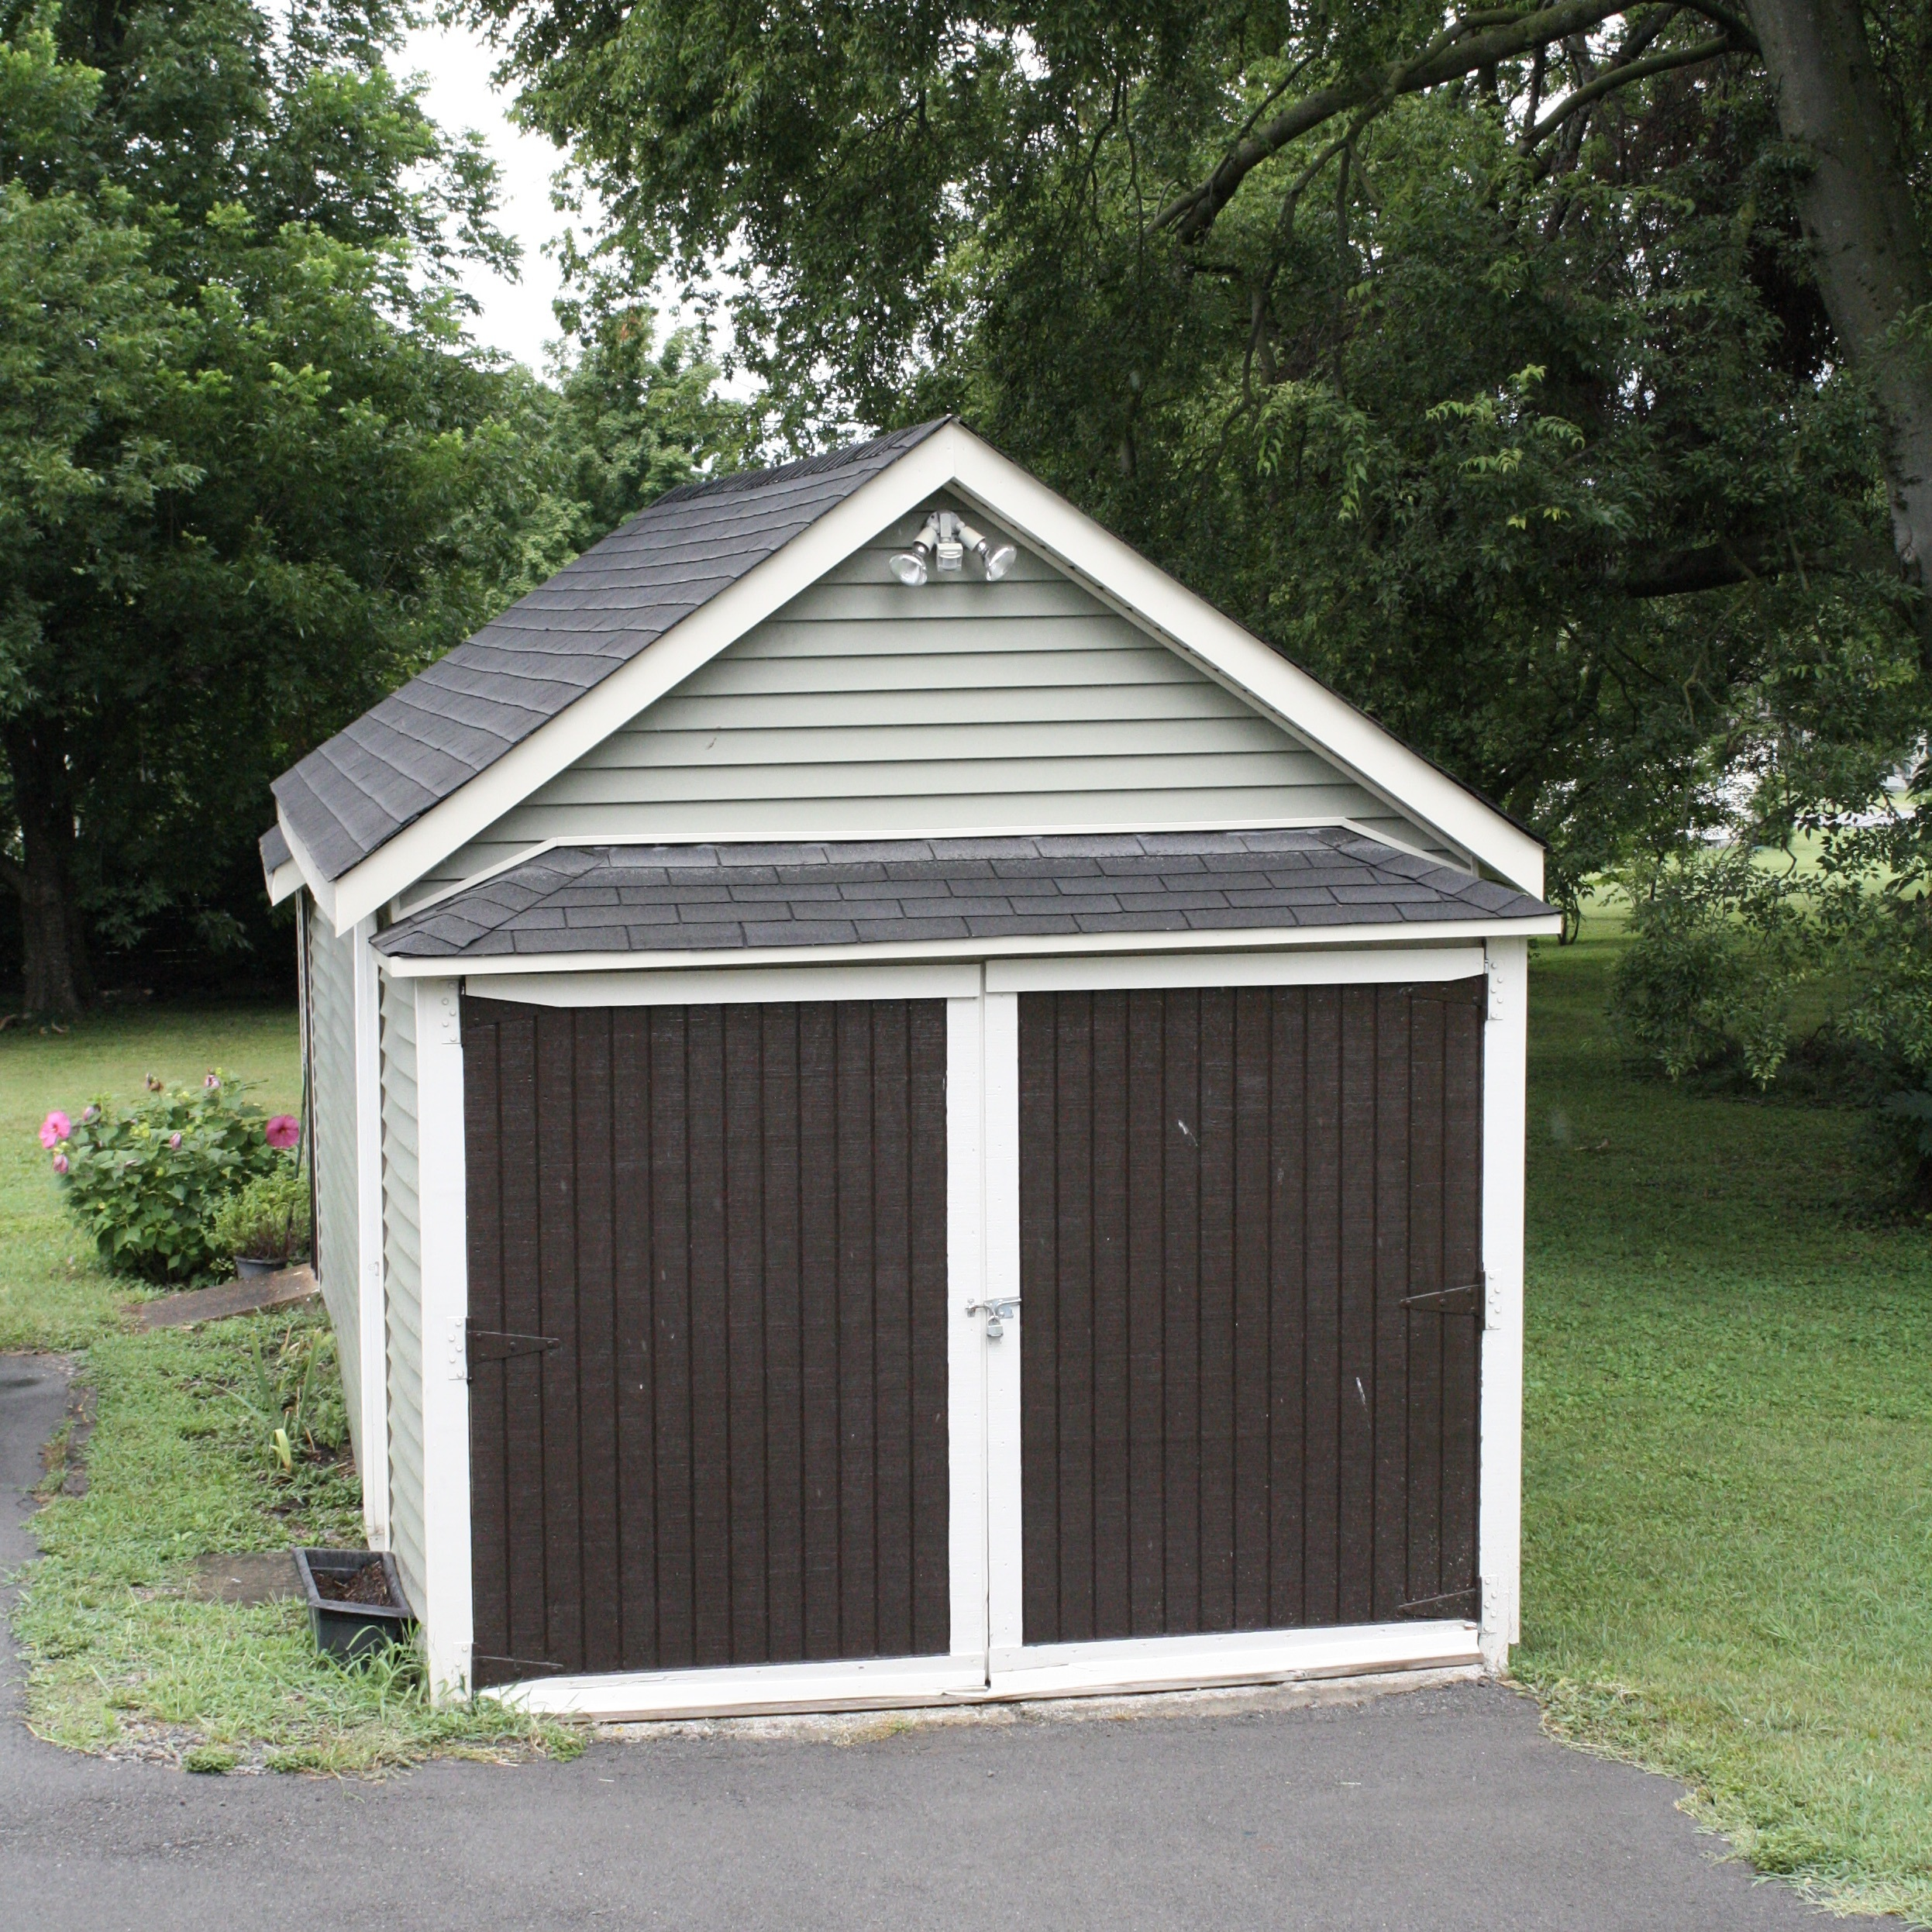 Electric Shed, Gallery Visit, July 2020